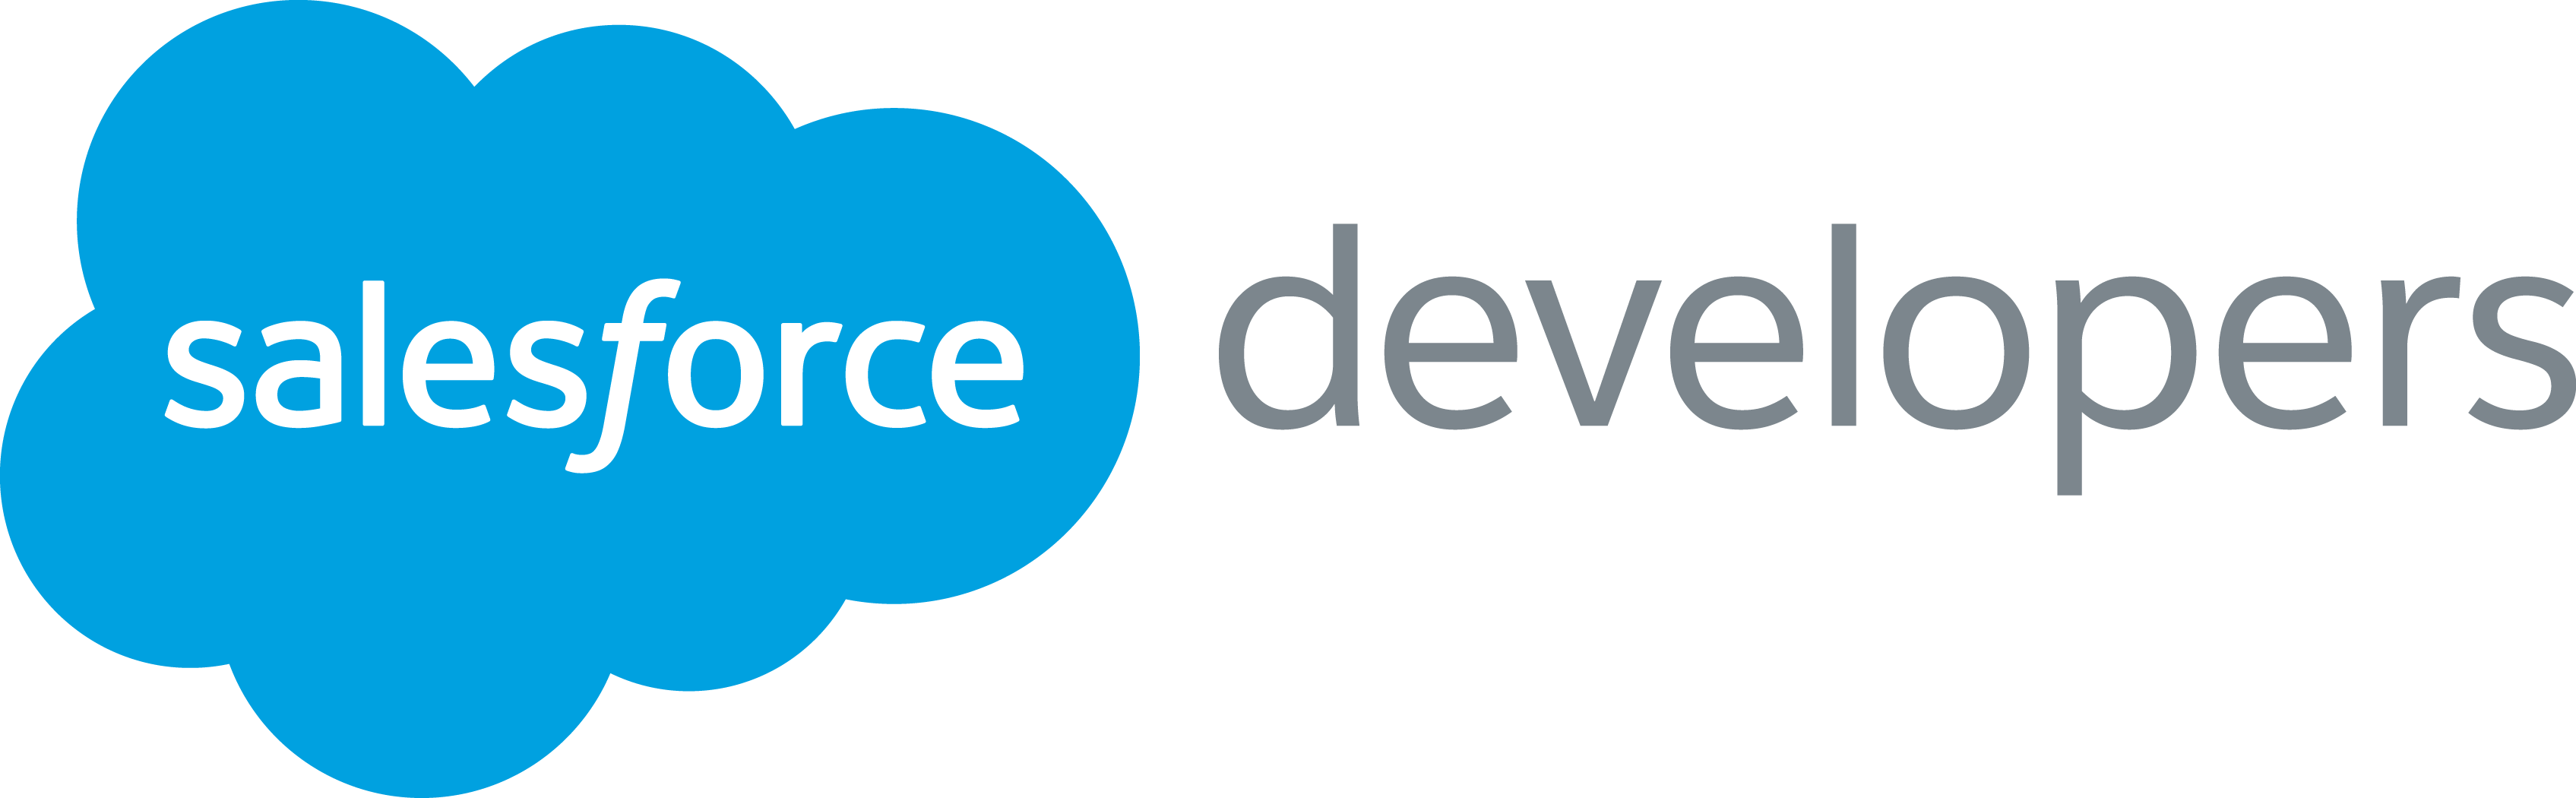 Salesforce Developers Logo